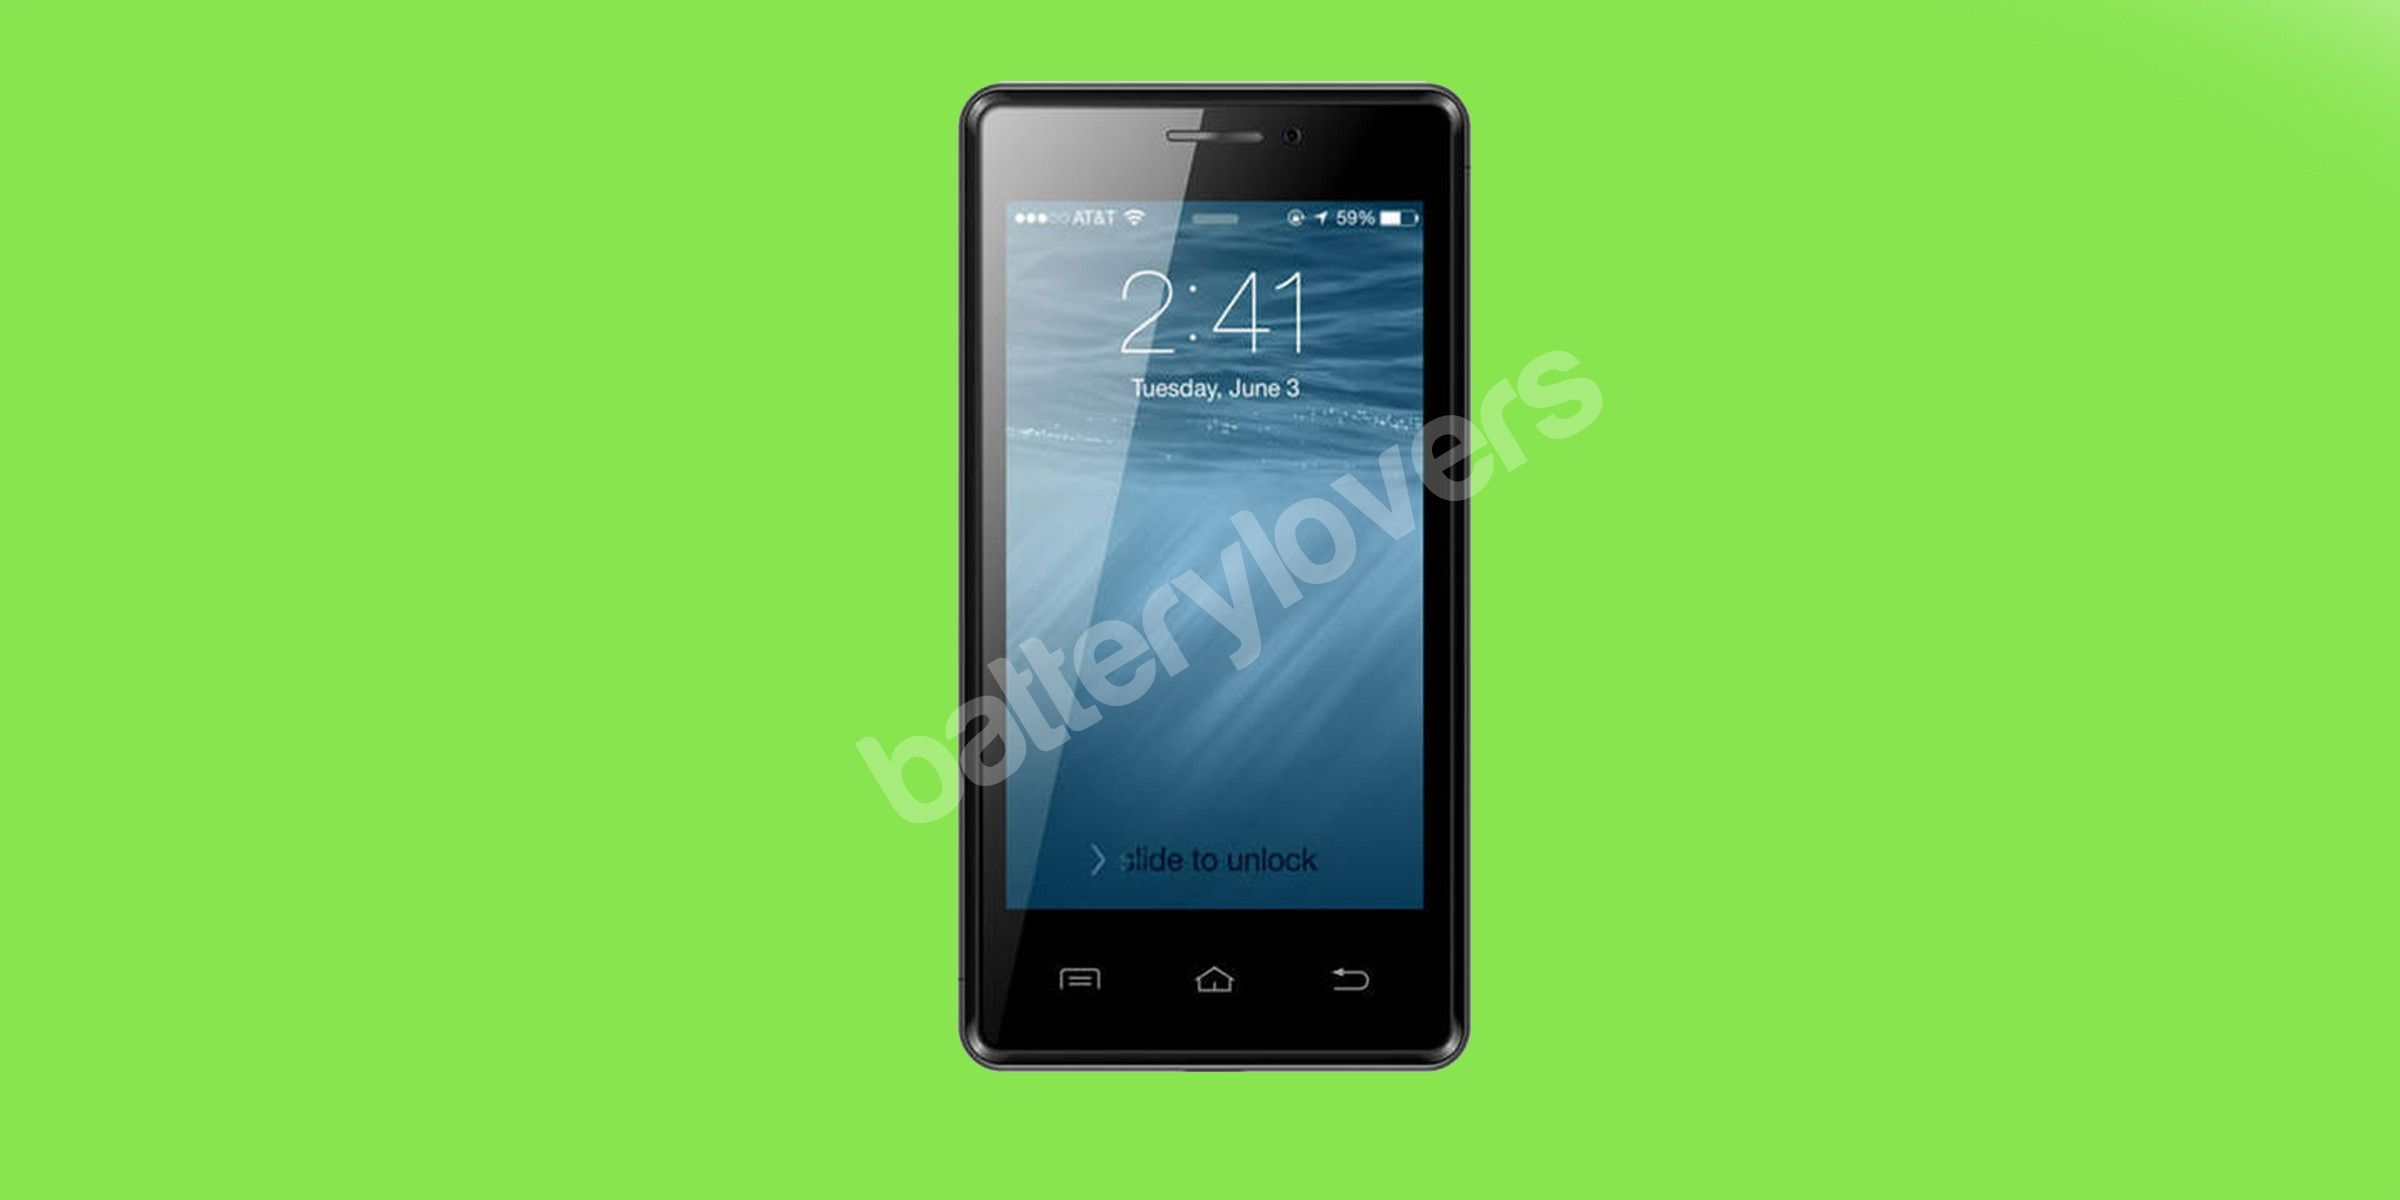 Karbonn A81 Black – Buy Brand New Karbonn A81 Mobile at Best Price in India at Batterylovers